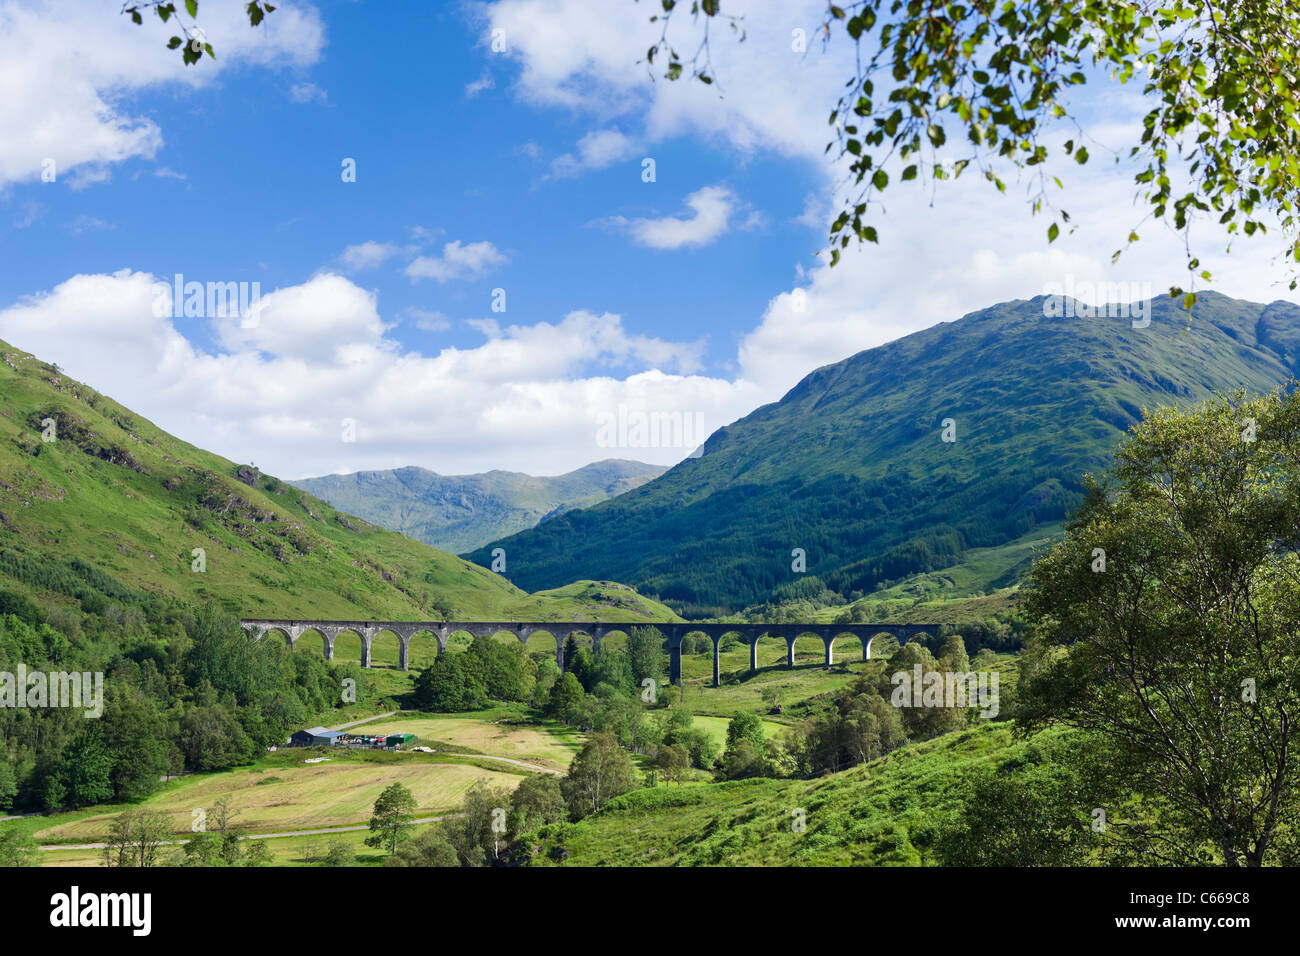 View of the Glenfinnan Viaduct on the West Highland Line, Glenfinnan, Lochabar, Scottish Highlands, Scotland, UK - Stock Image